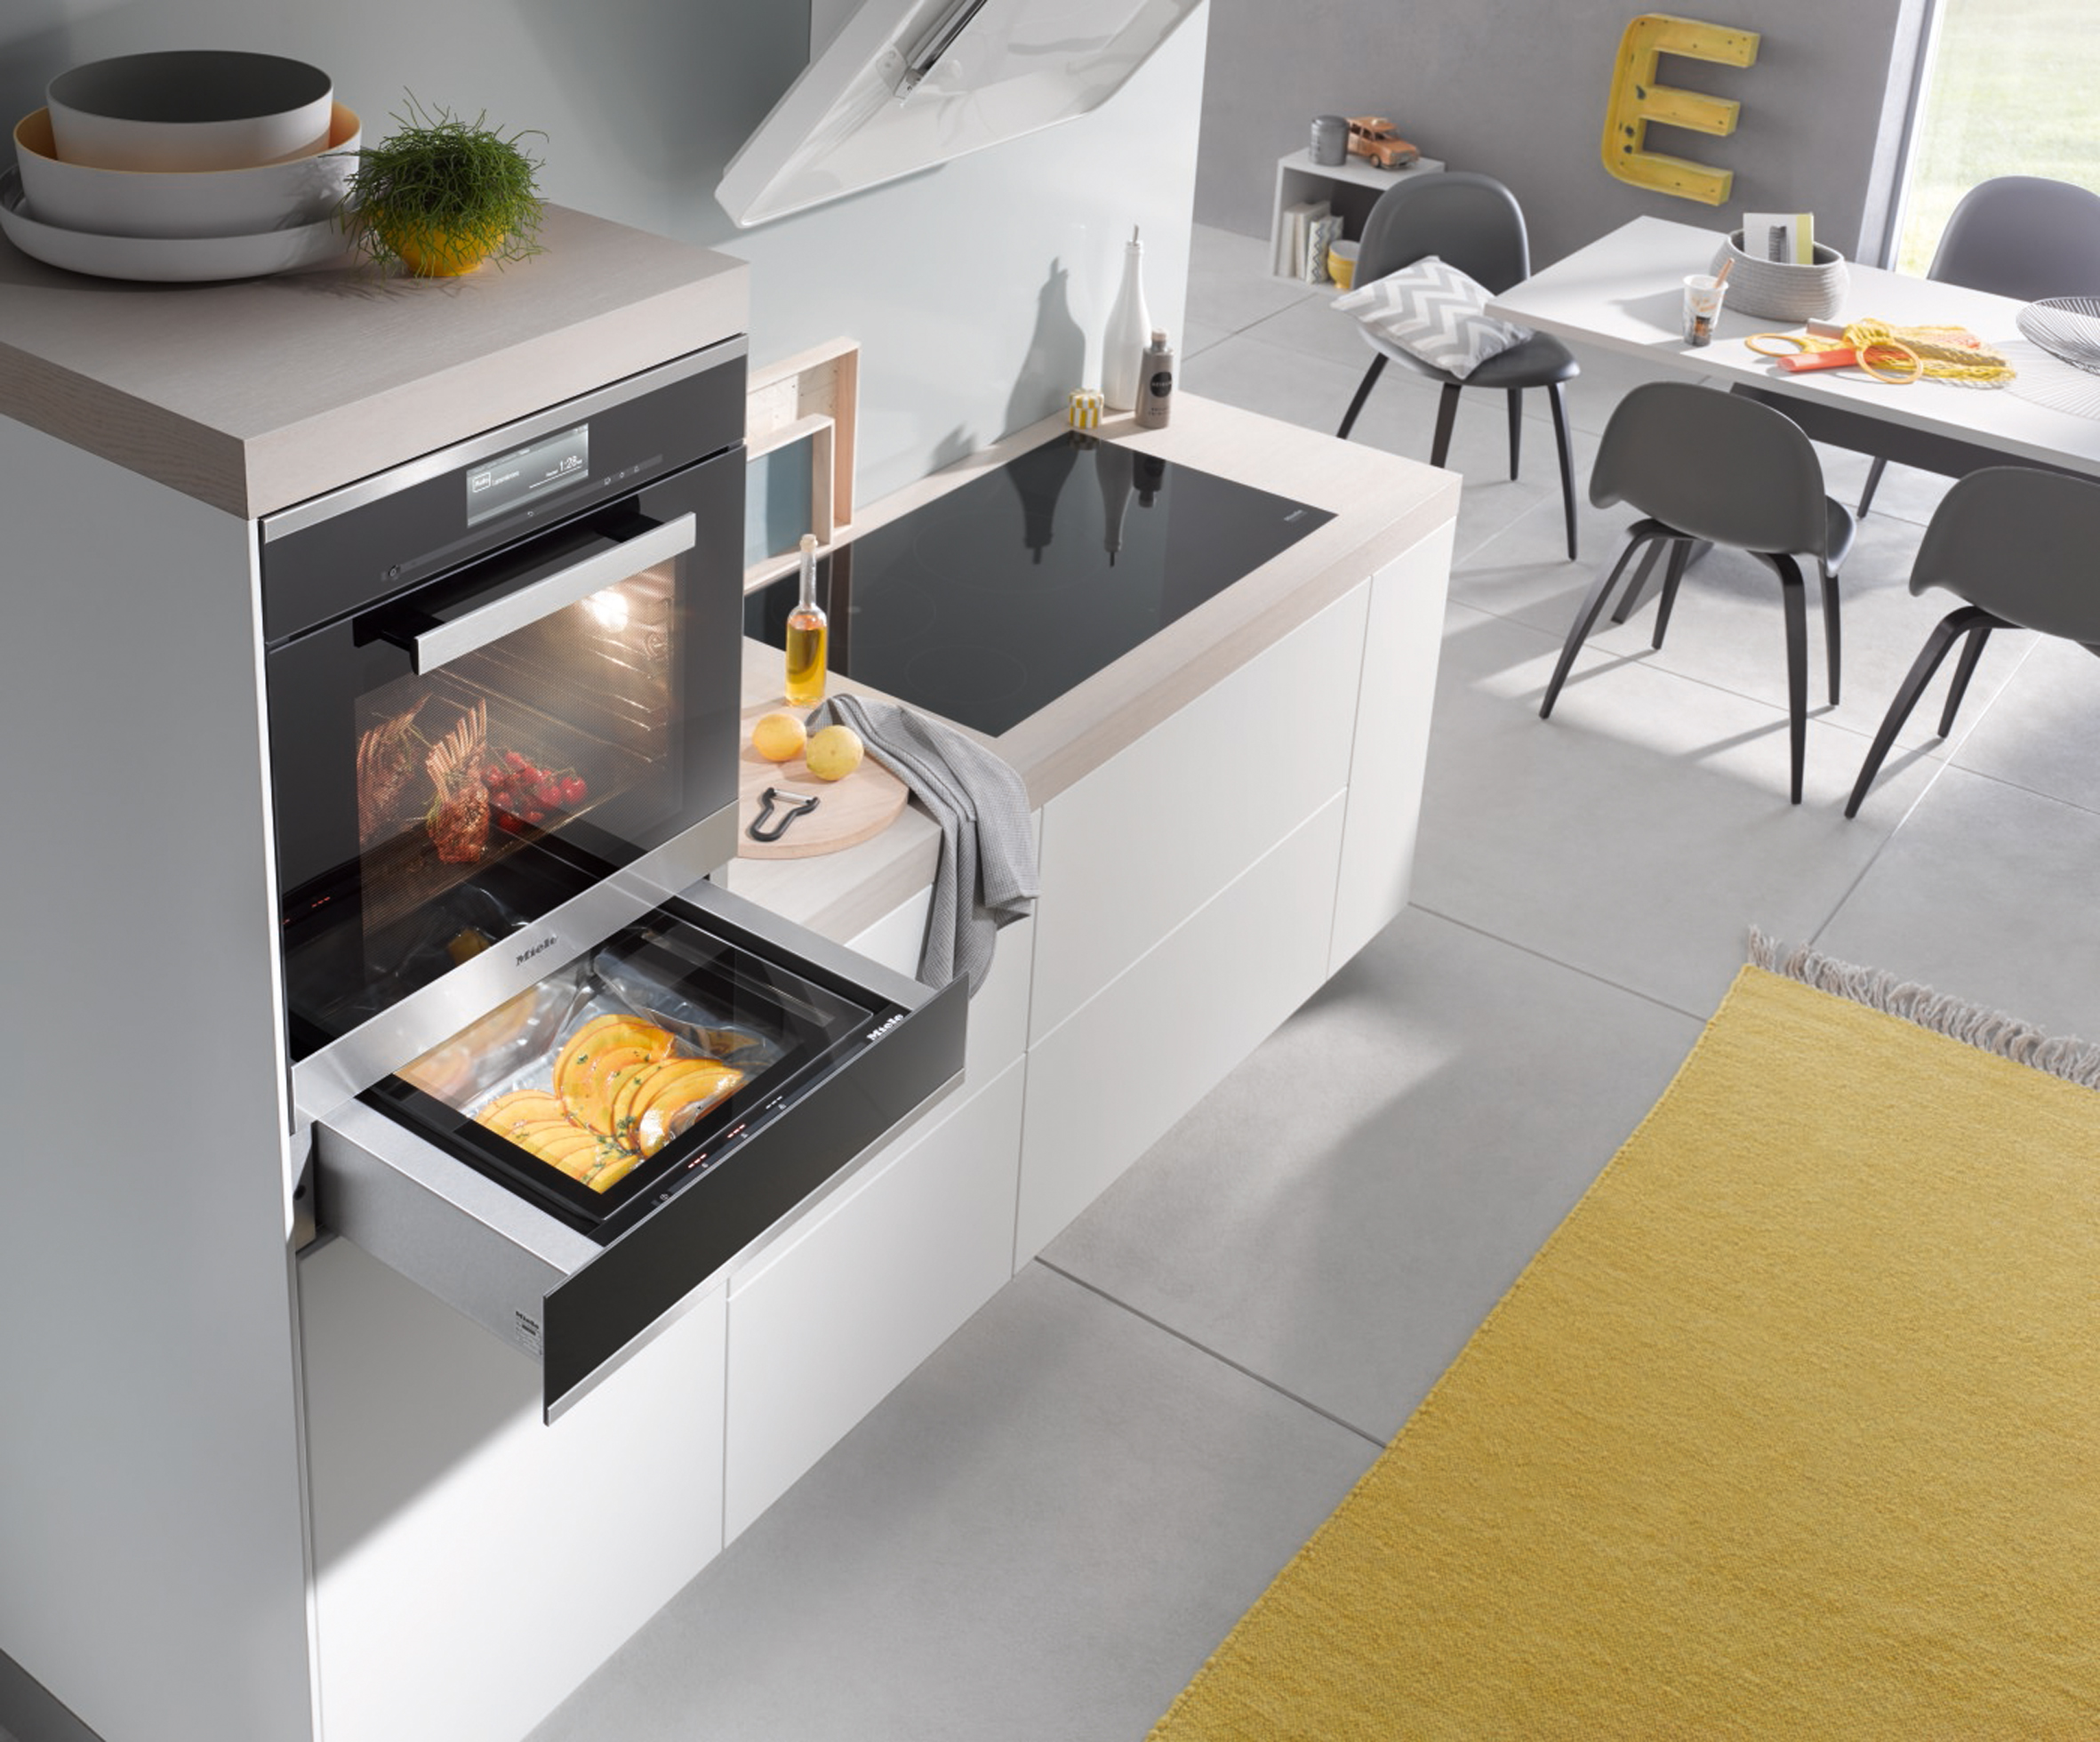 Miele 5 questions when choosing appliances warming drawer